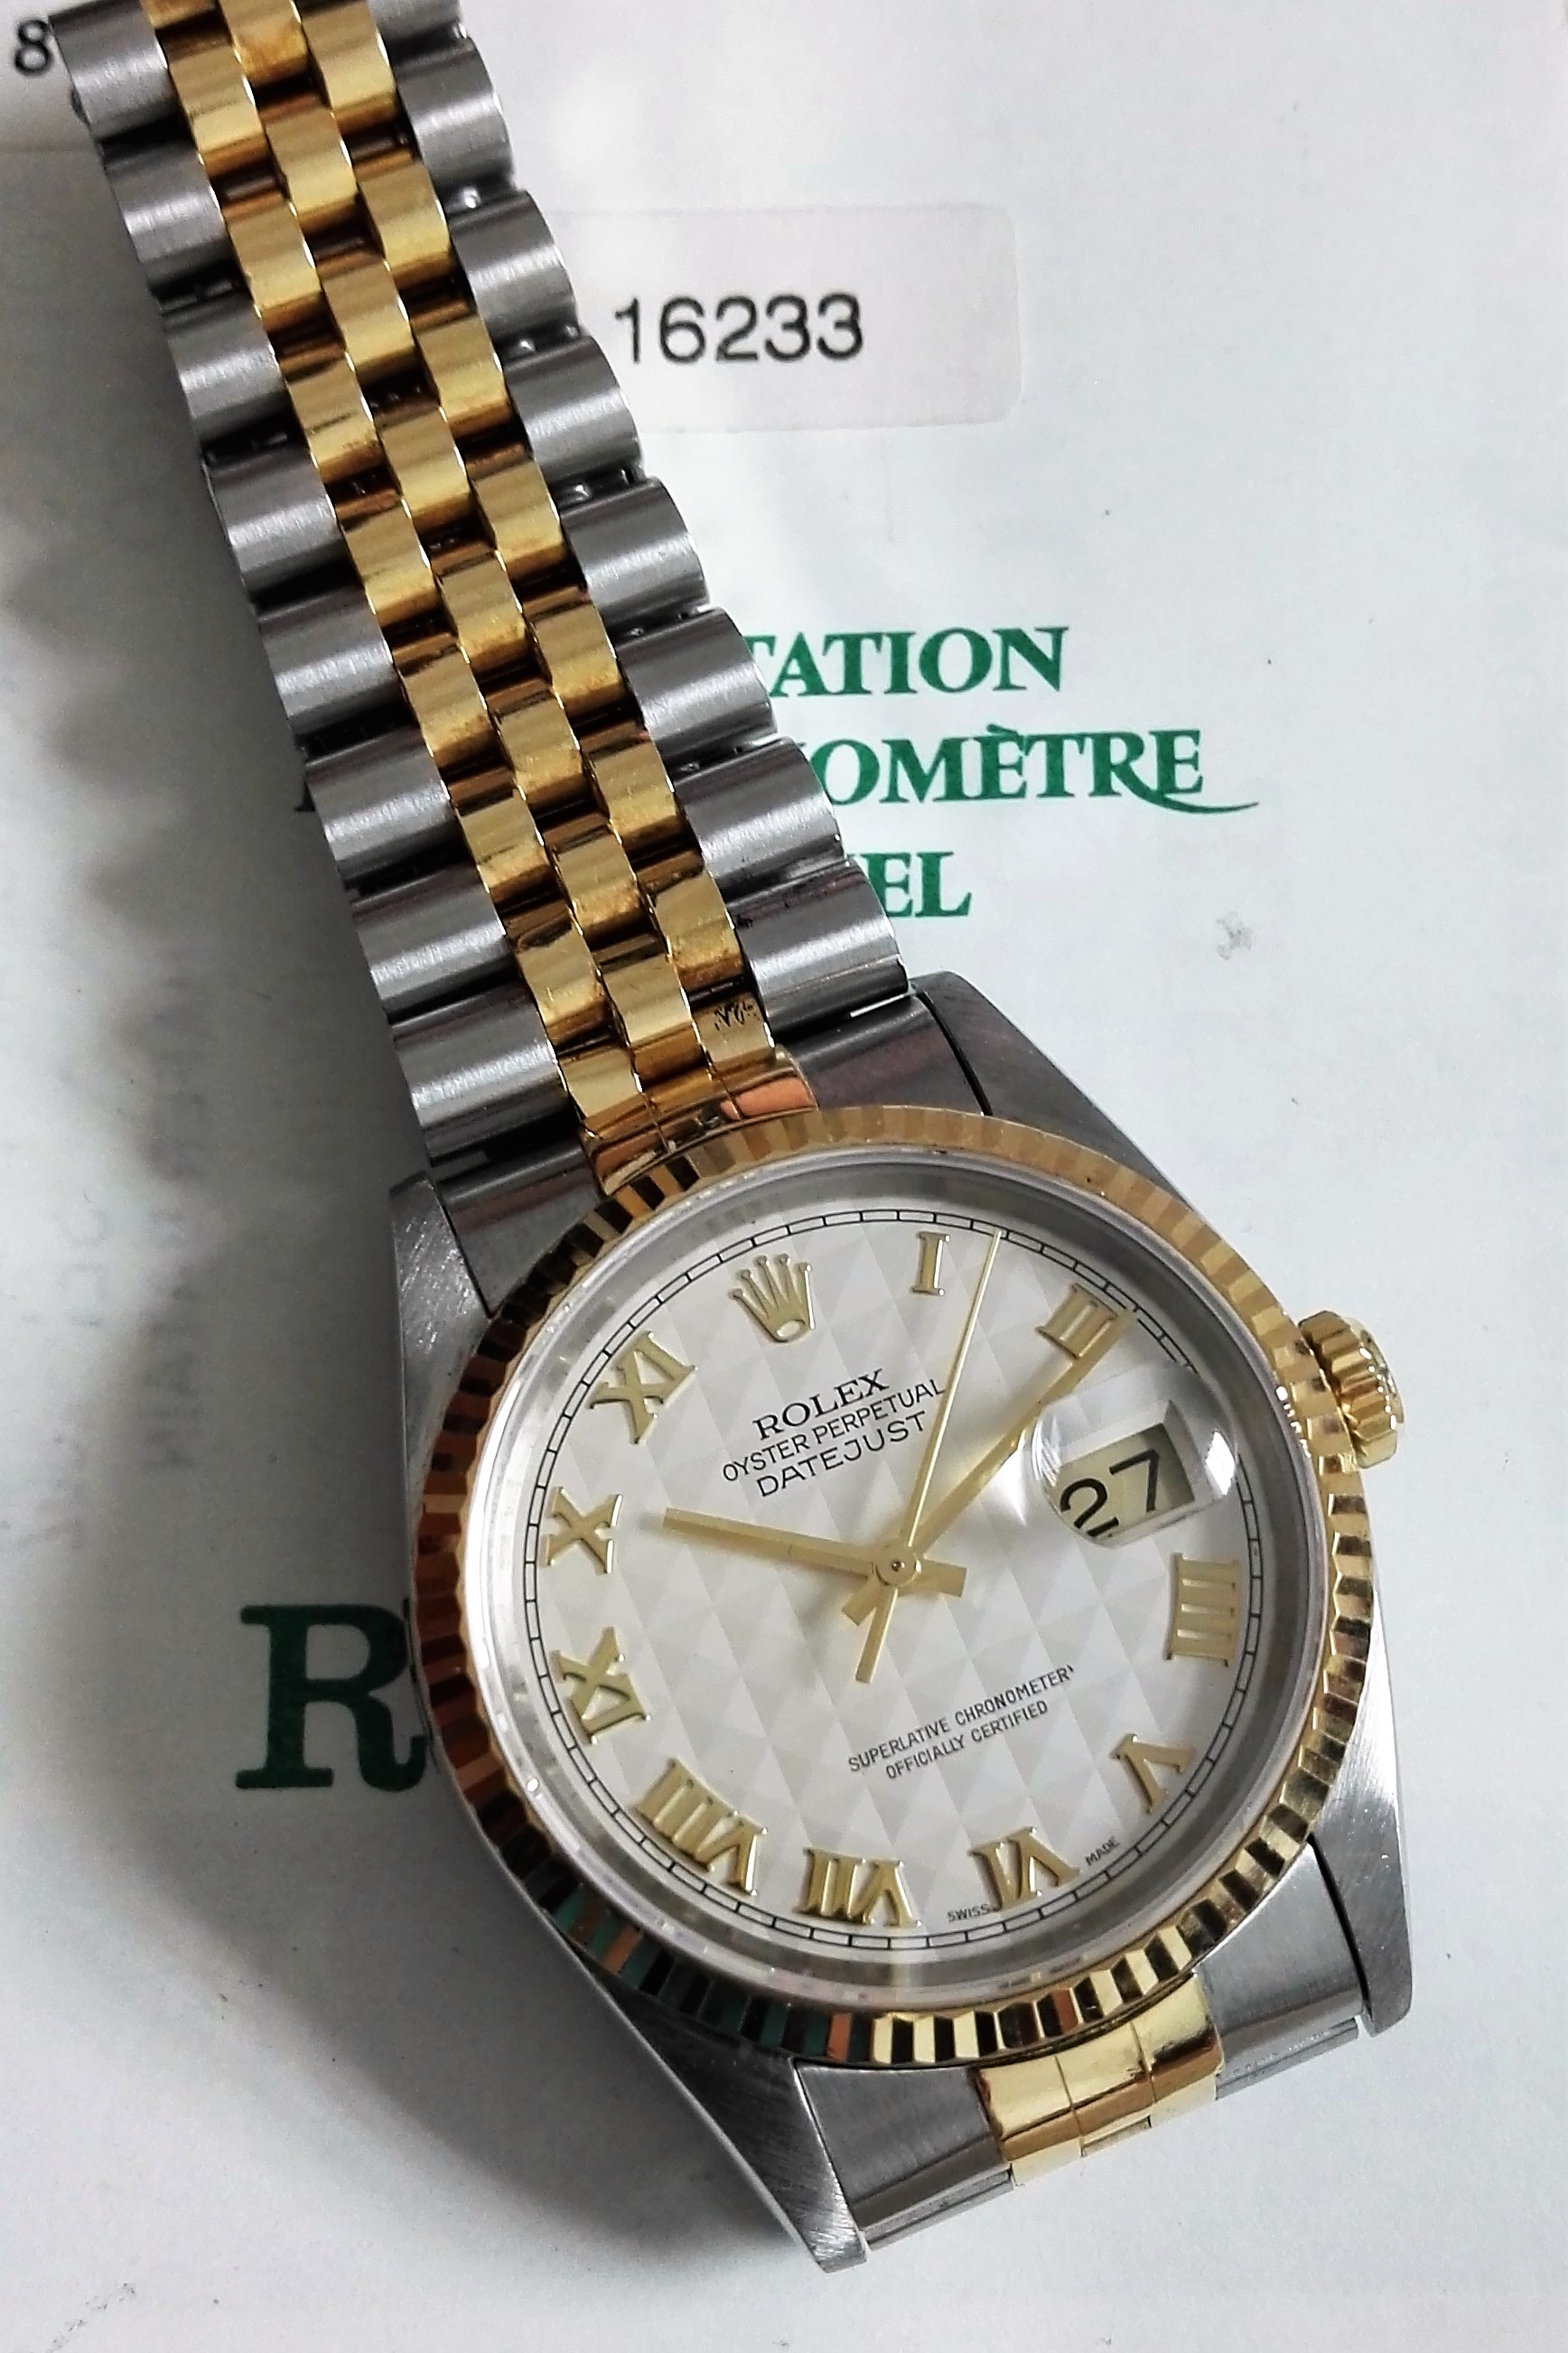 Rolex Datejust Datejust Men's 2-Tone Watch 16233 Ivory Colored Pyramid Dial | San Giorgio a Cremano